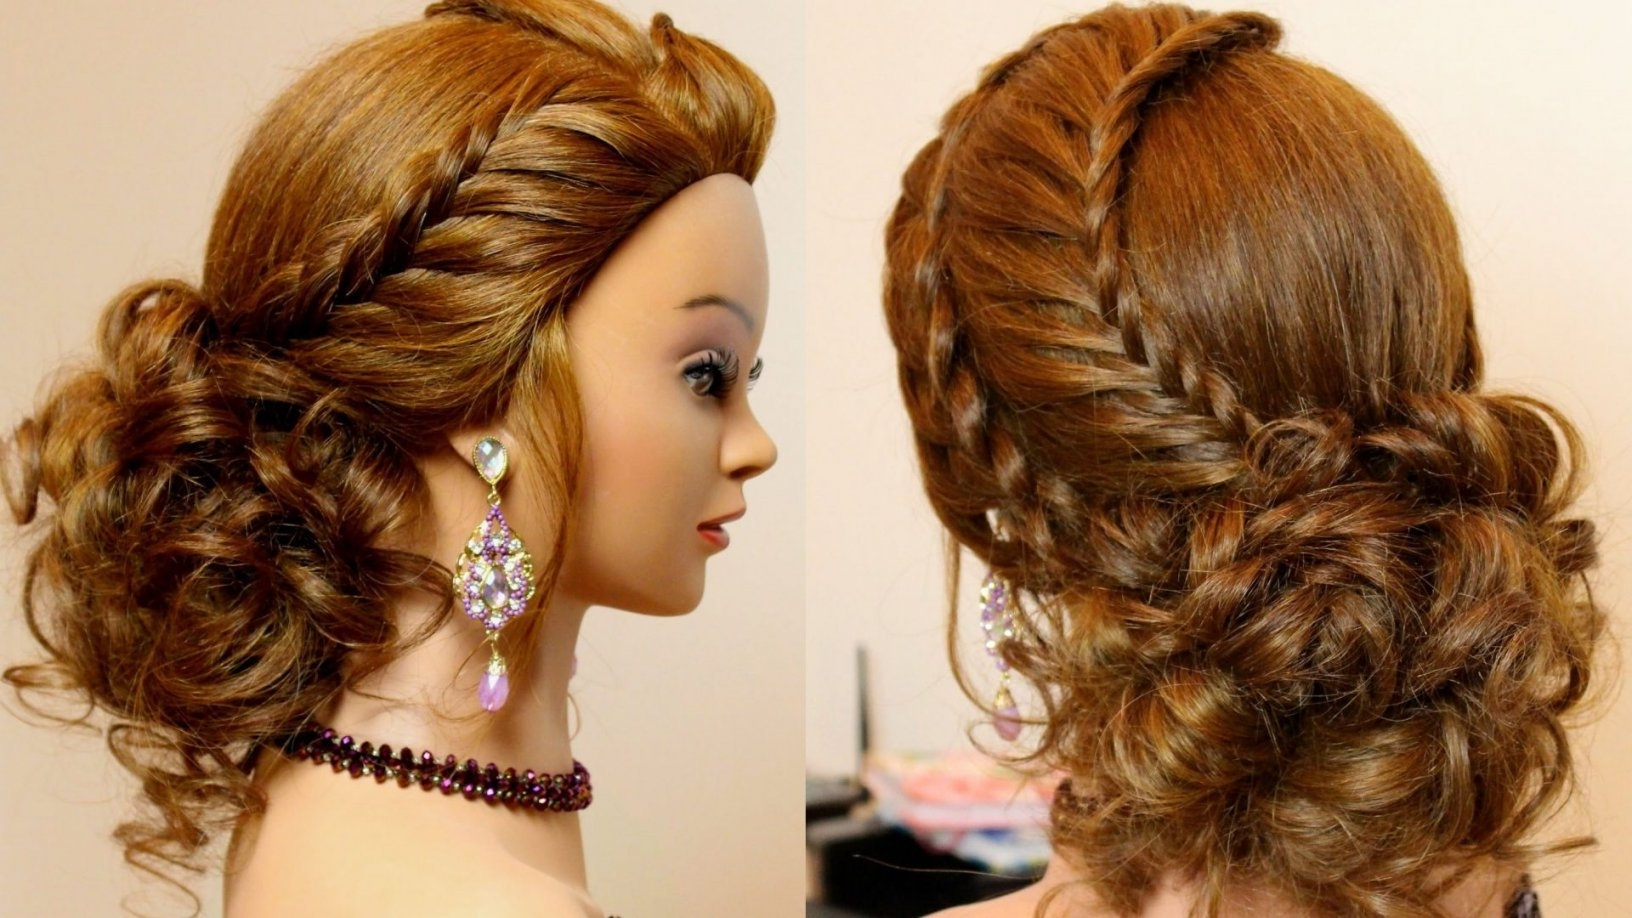 Updo Hairstyles For Long Thick Hair Impressive Updos To The Side Regarding Updo Hairstyles For Long Thick Hair (View 12 of 15)